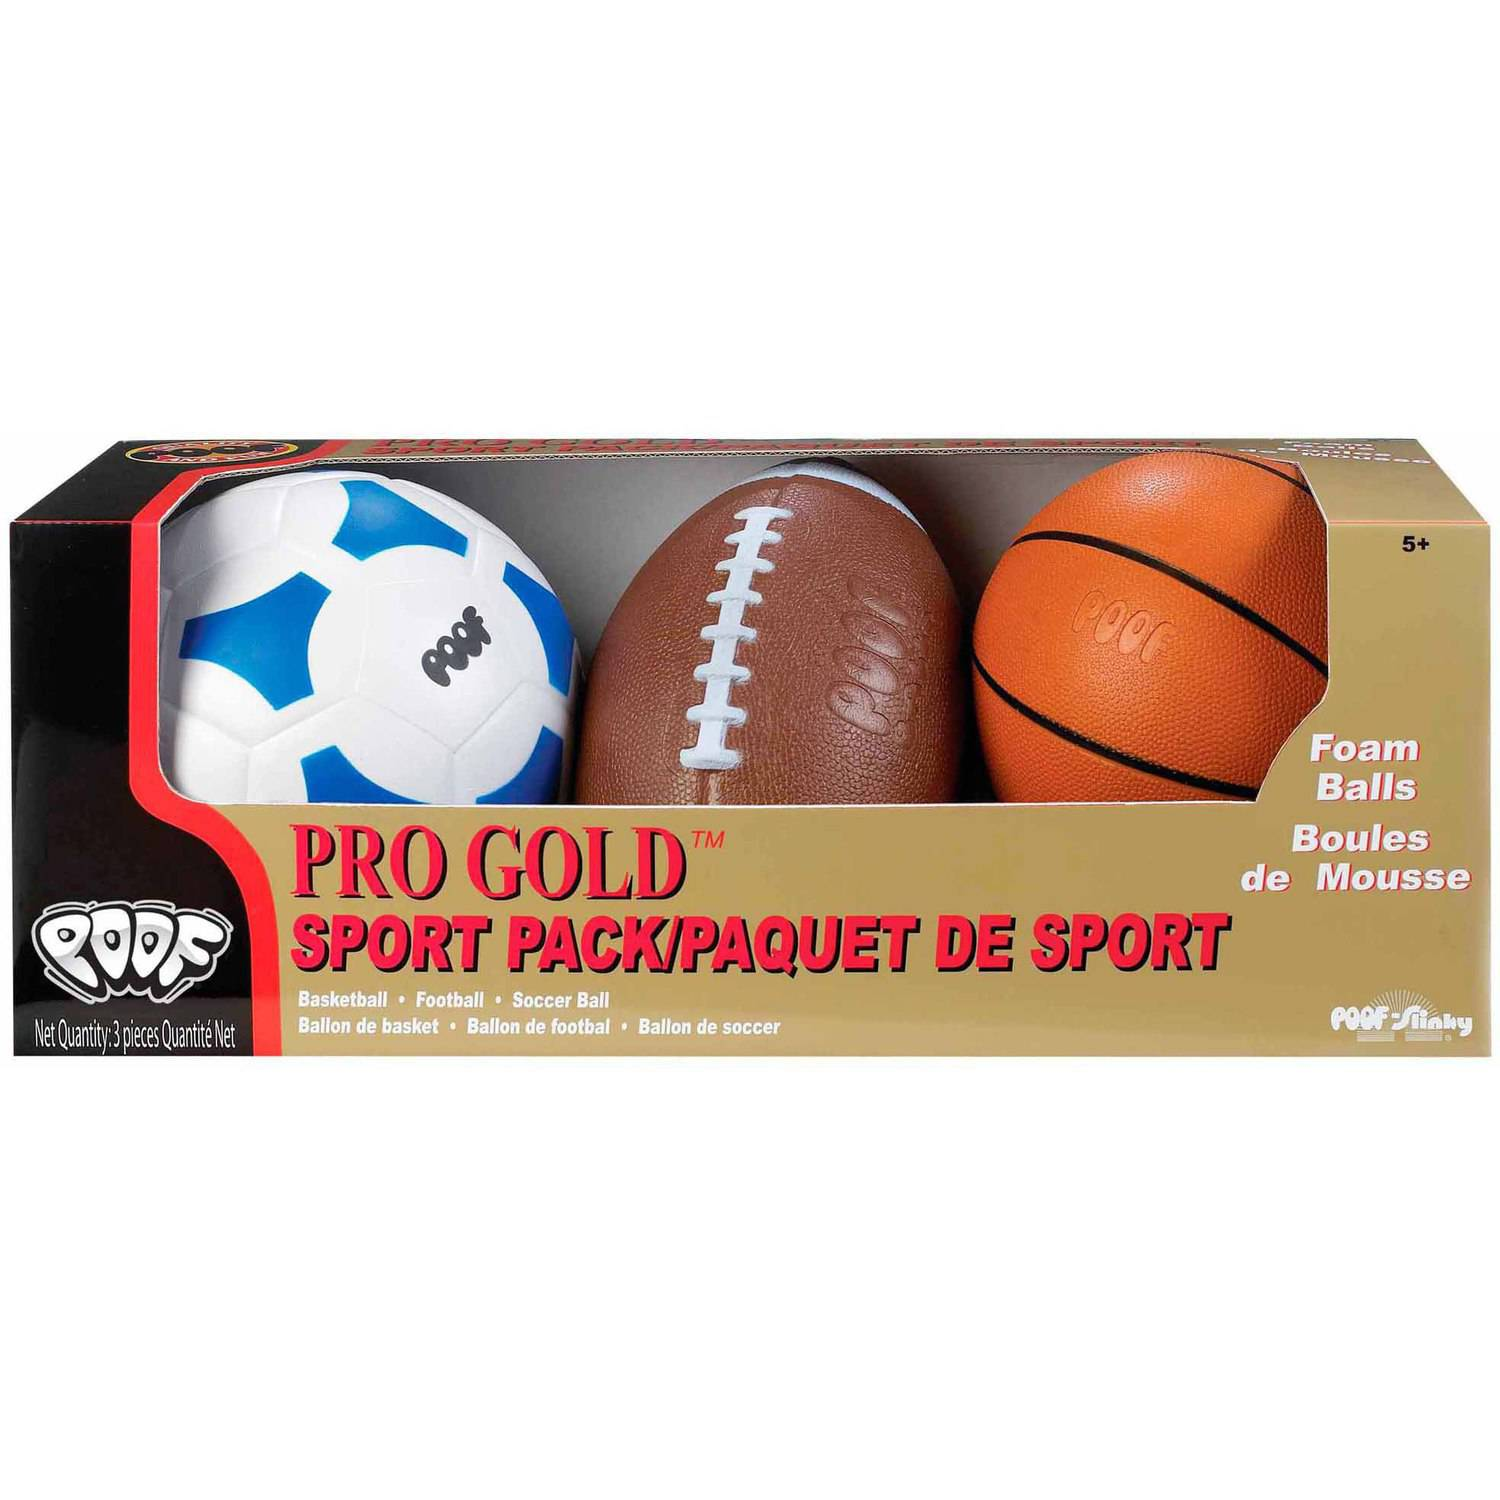 "POOF-Slinky Pro Gold Foam 9.5"" Football, 7"" Basketball and 7.5"" Soccer Ball 3-Ball Sport Pack in Box (Various Colors) 463BL"